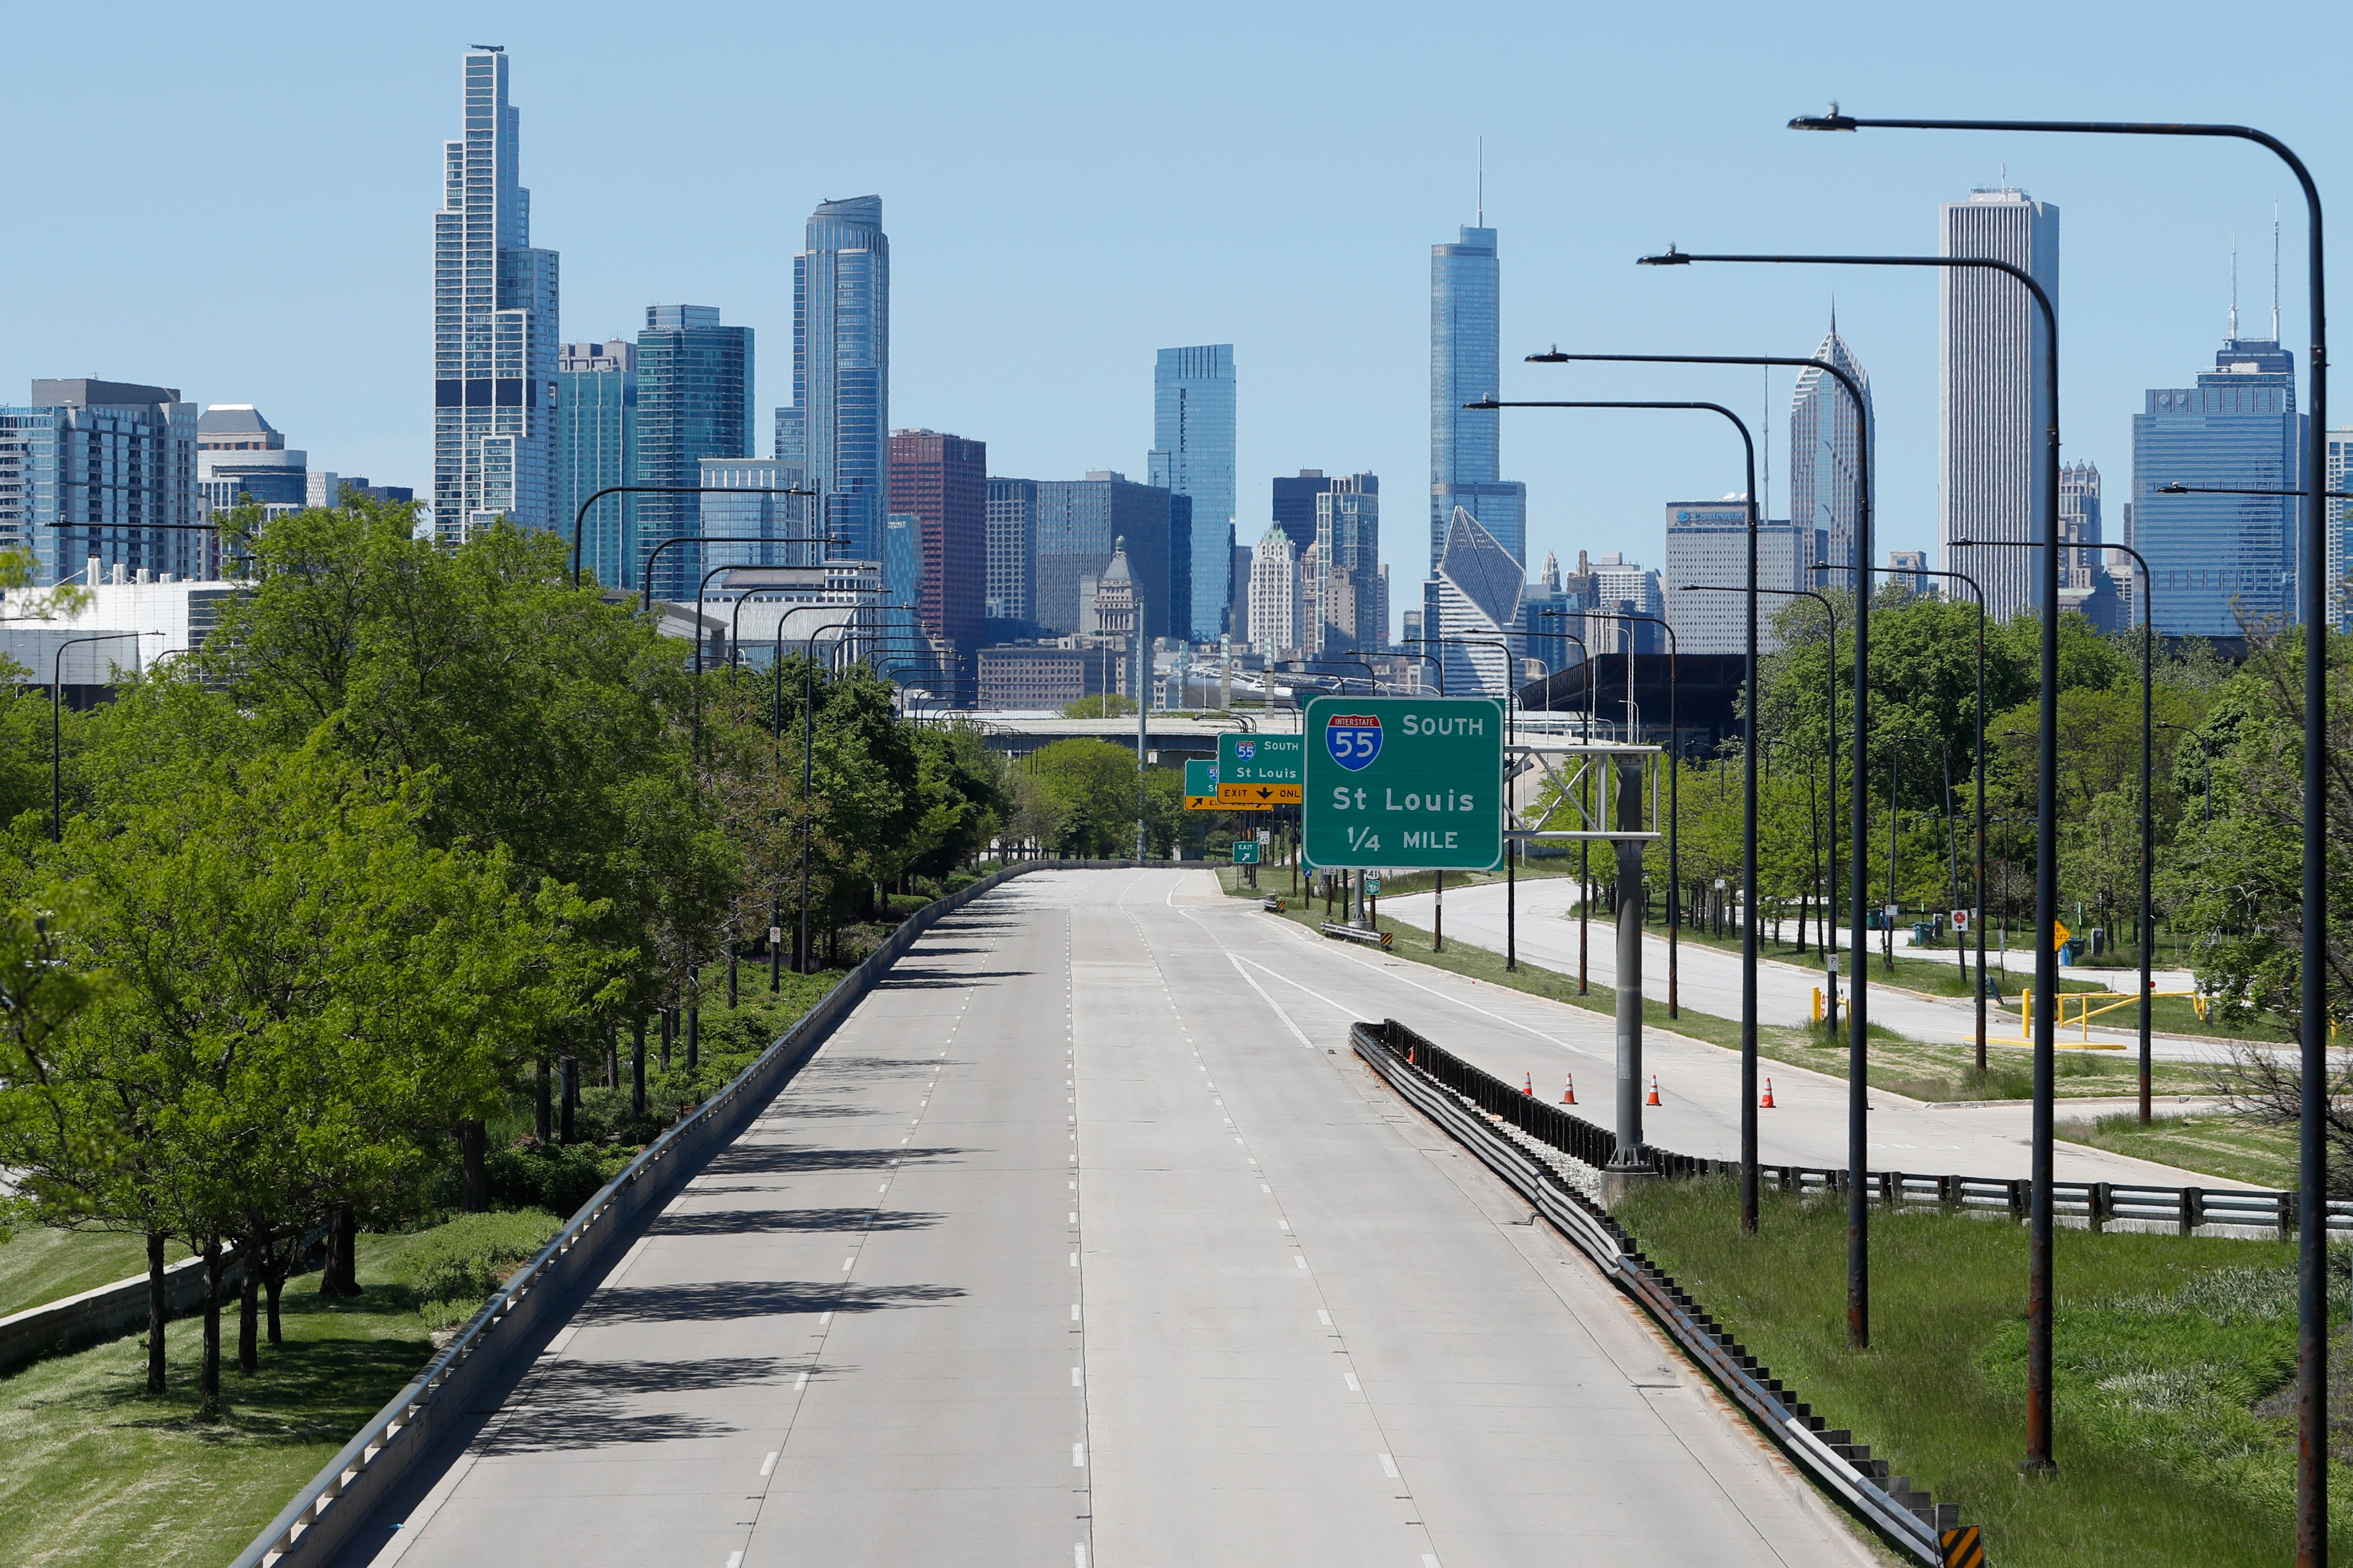 Chicago's Lake Shore Drive might change to honor Black man 1